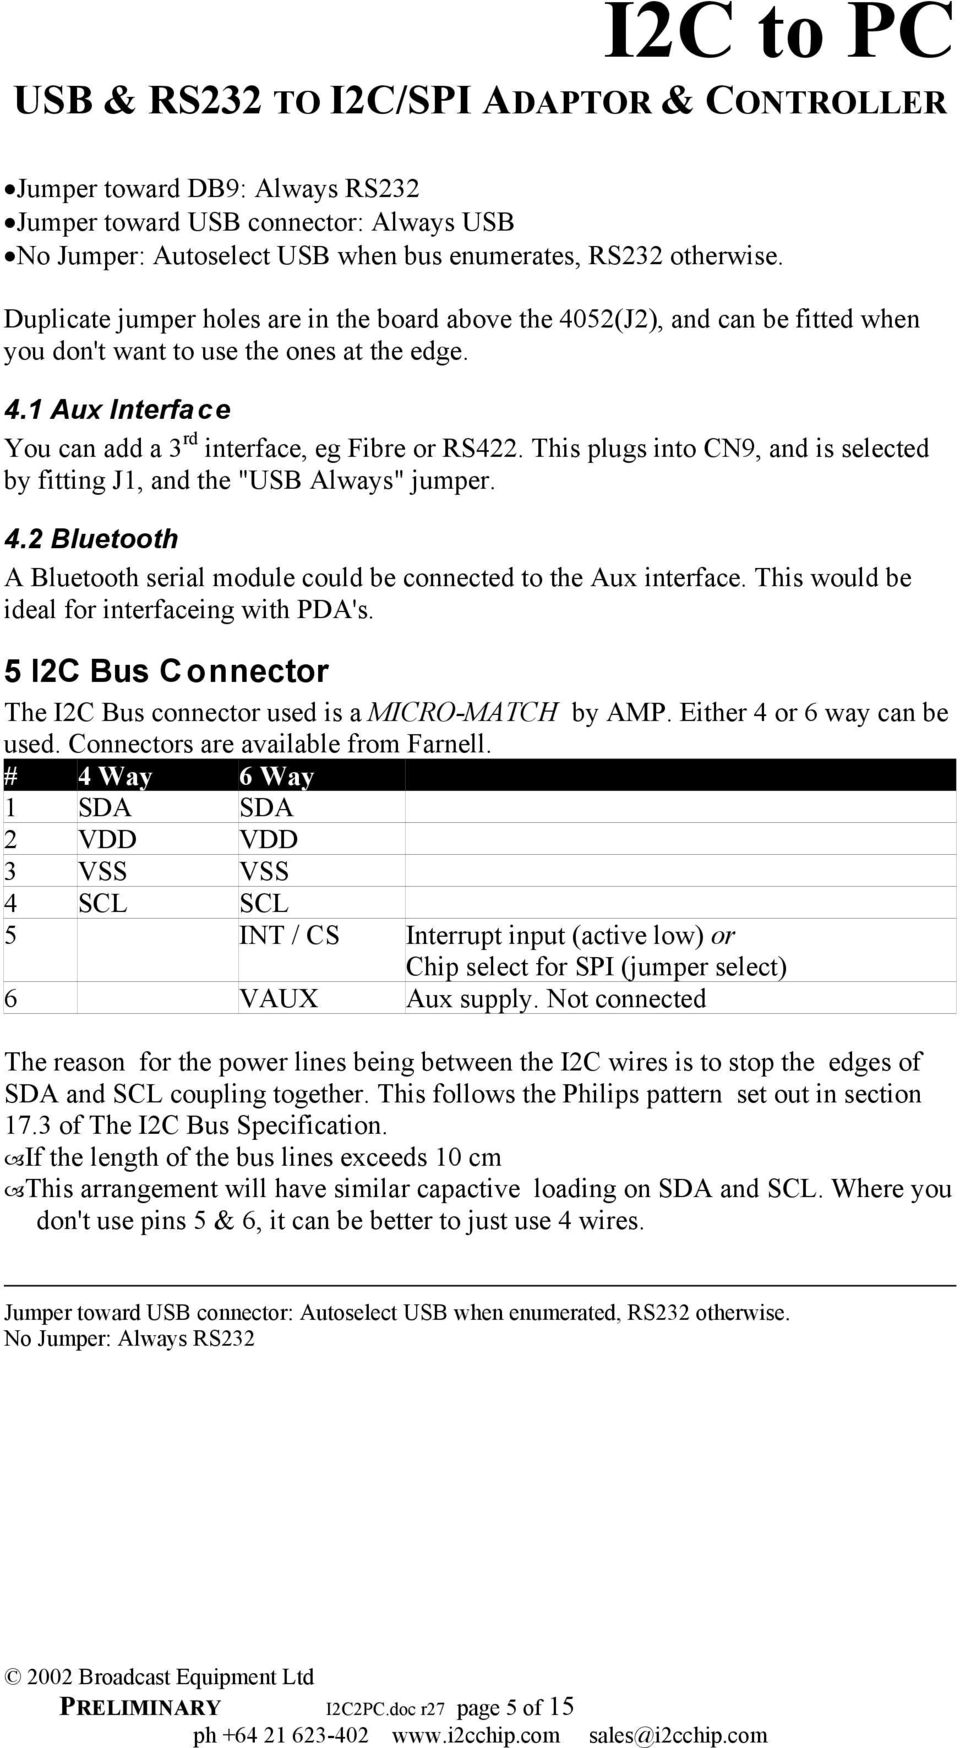 I2C to PC USB & RS232 TO I2C/SPI ADAPTOR & CONTROLLER - PDF